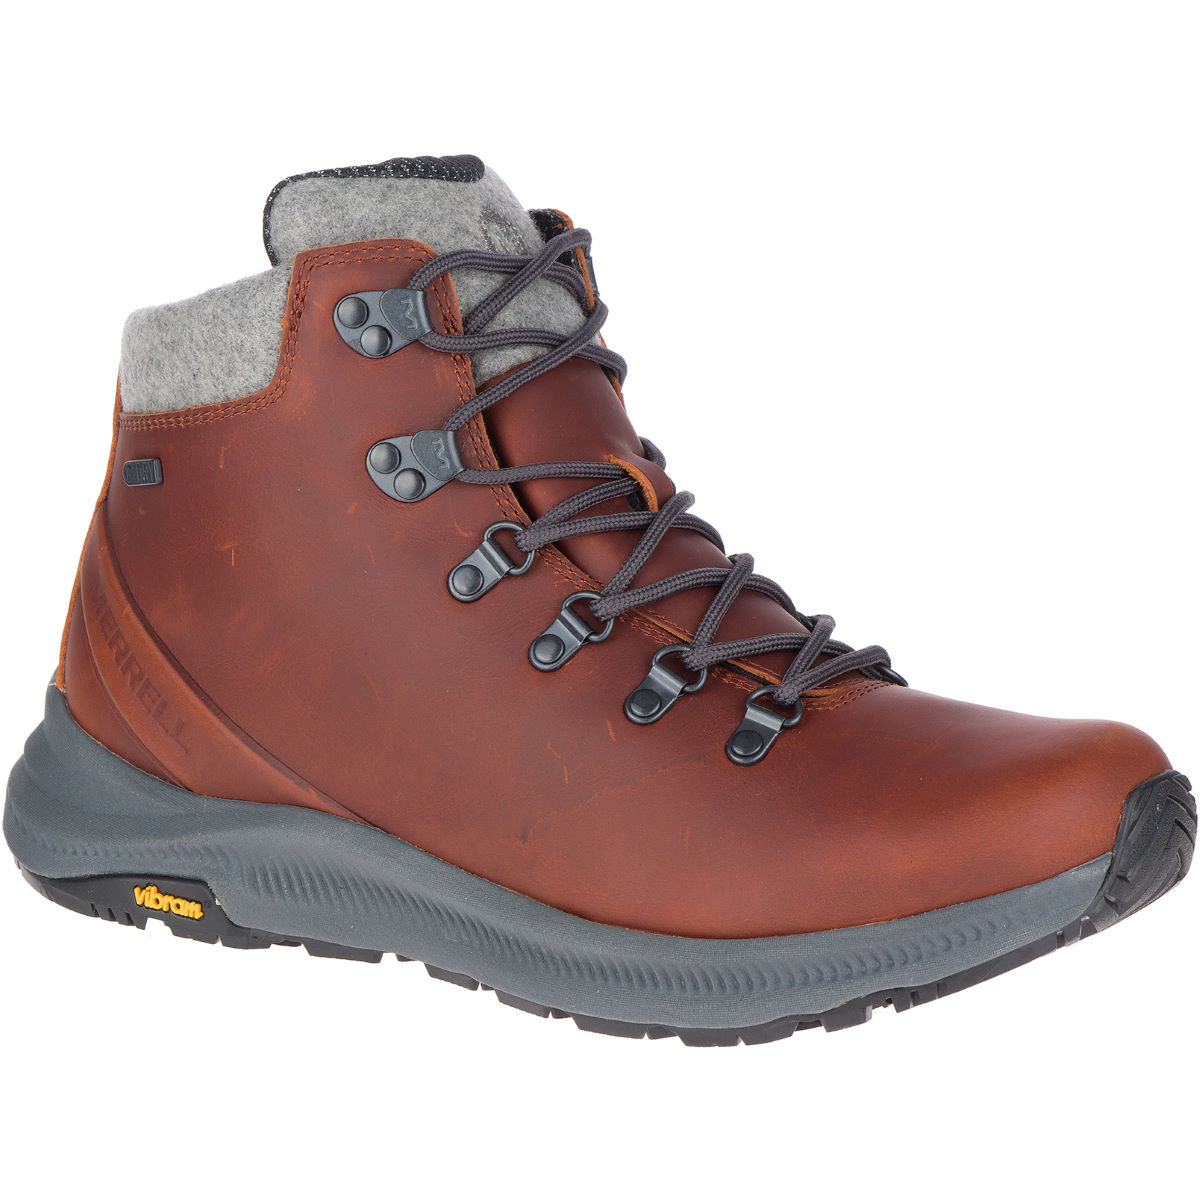 Merrell Merrell Ontario Thermo Waterproof Mid Boots   Boots